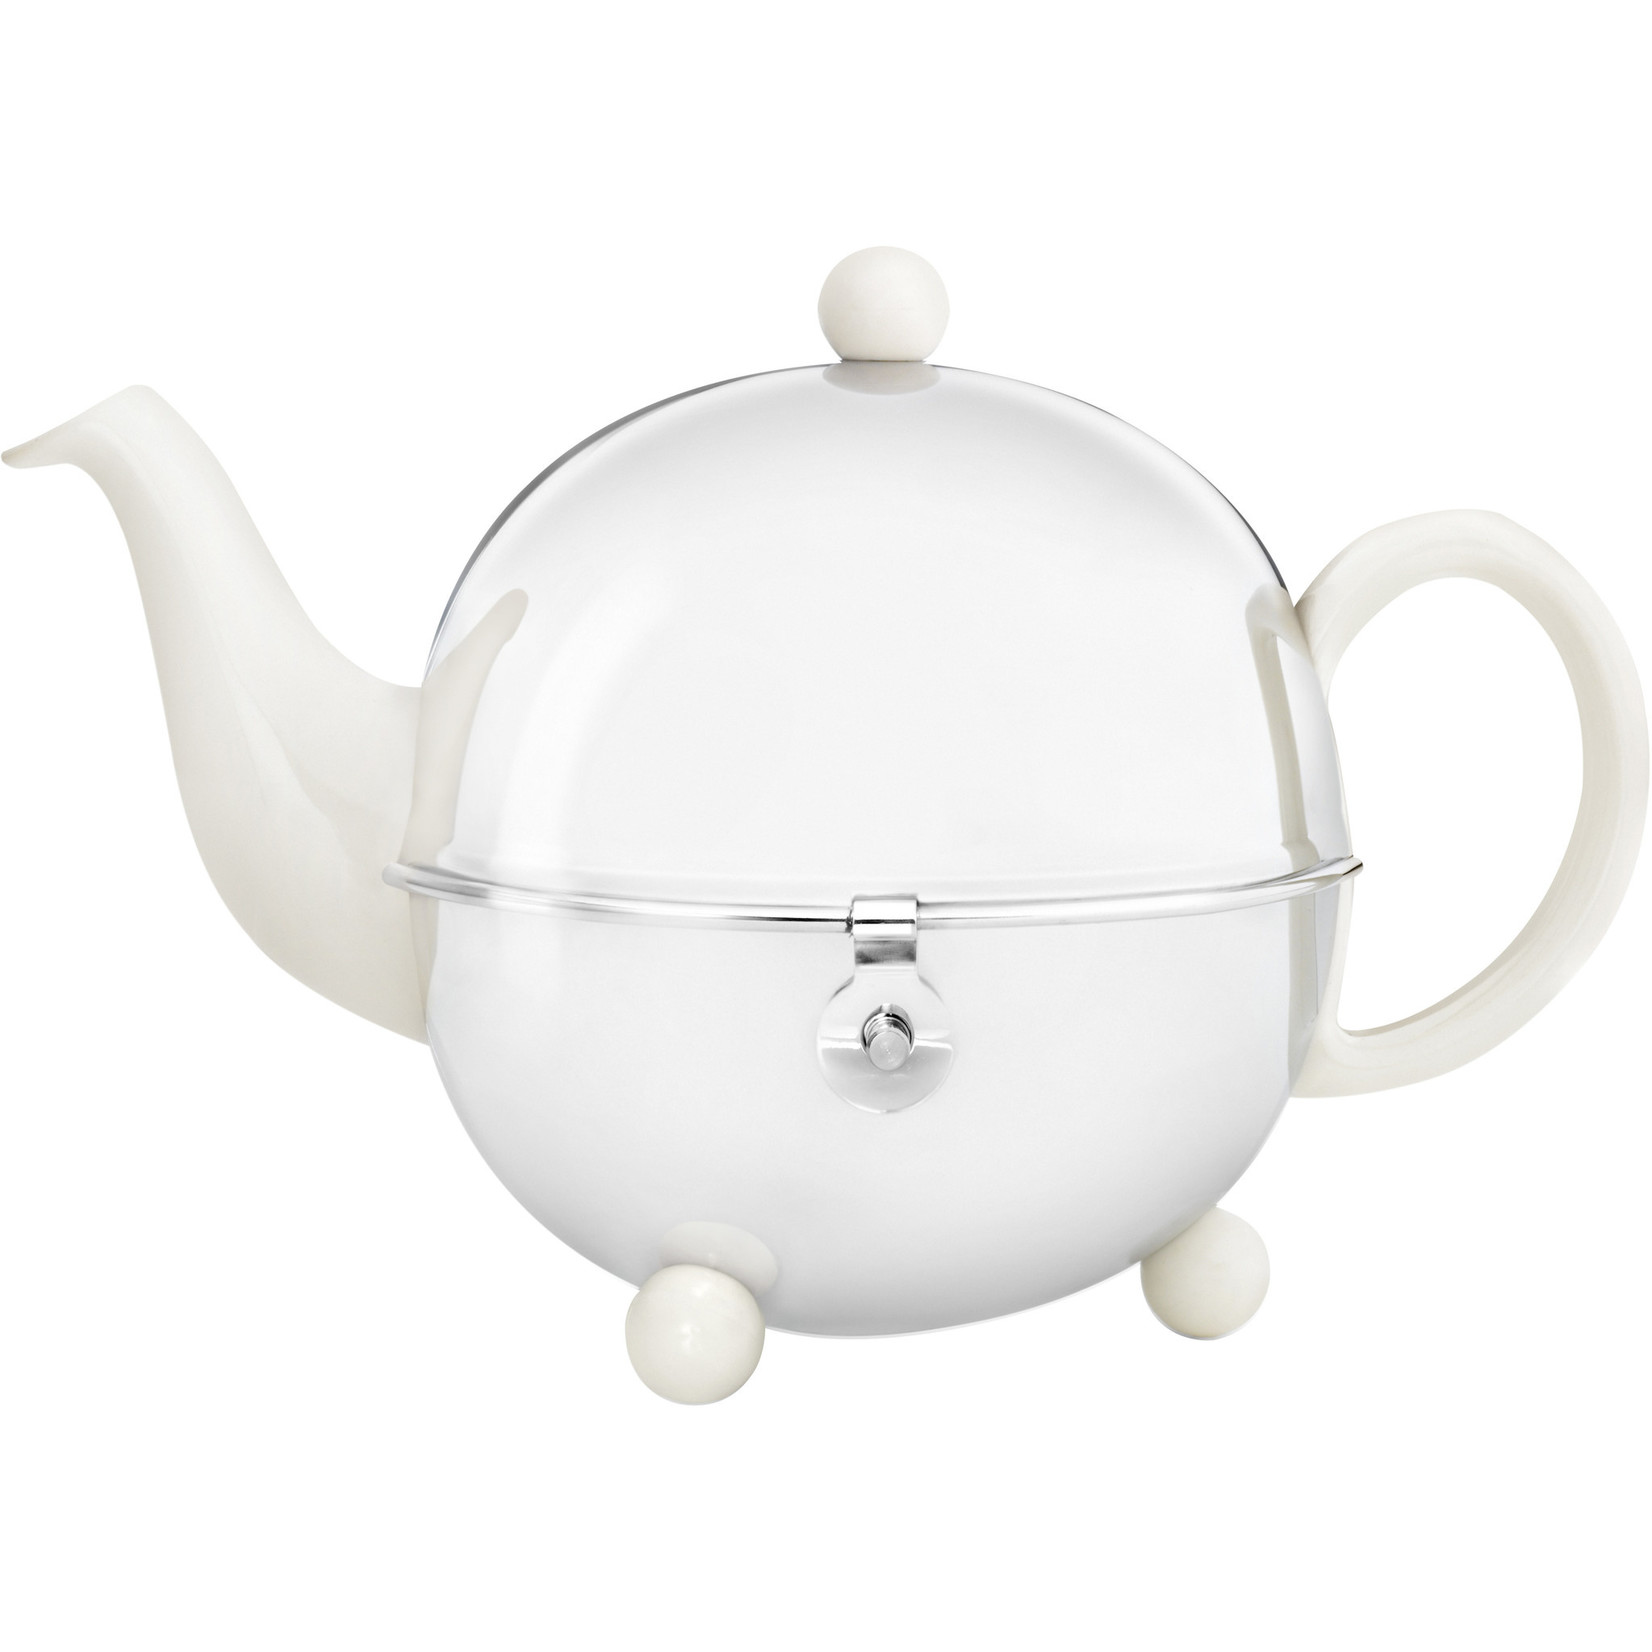 Bredemeijer Bredemeijer Cosy Theepot crème-wit 0,9 ltr